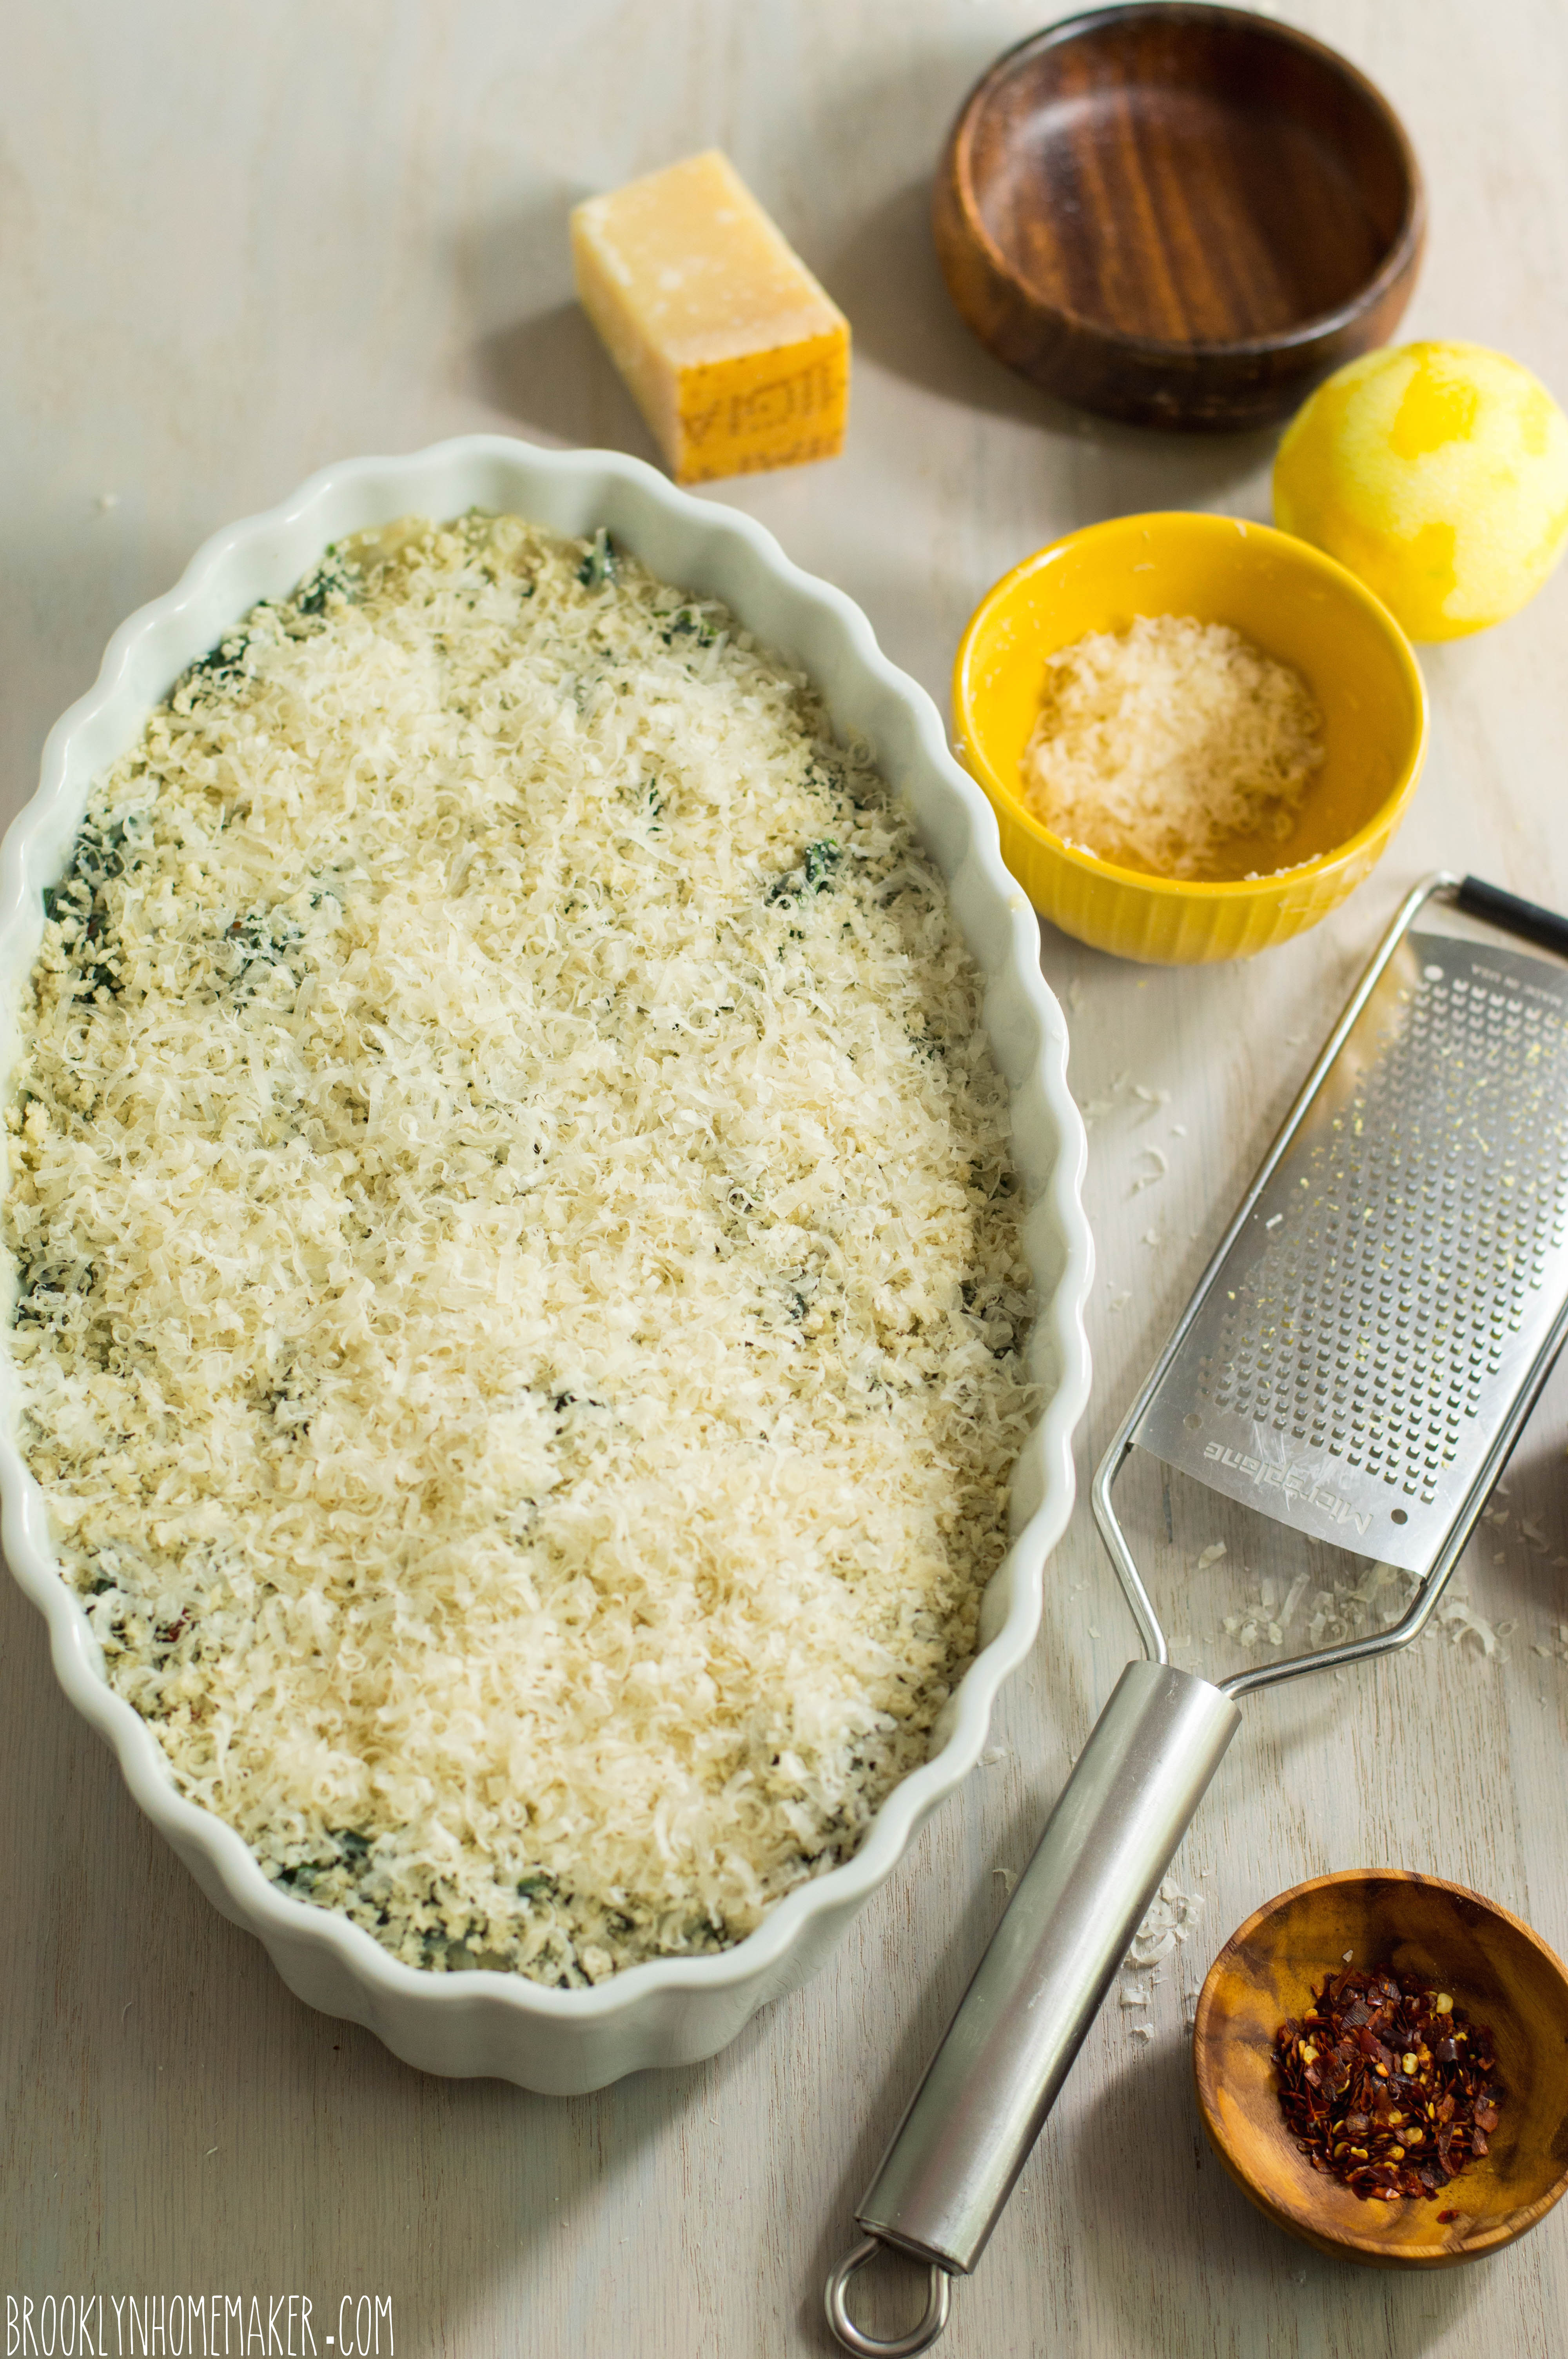 Communication on this topic: Creamed Kale Gratin, creamed-kale-gratin/